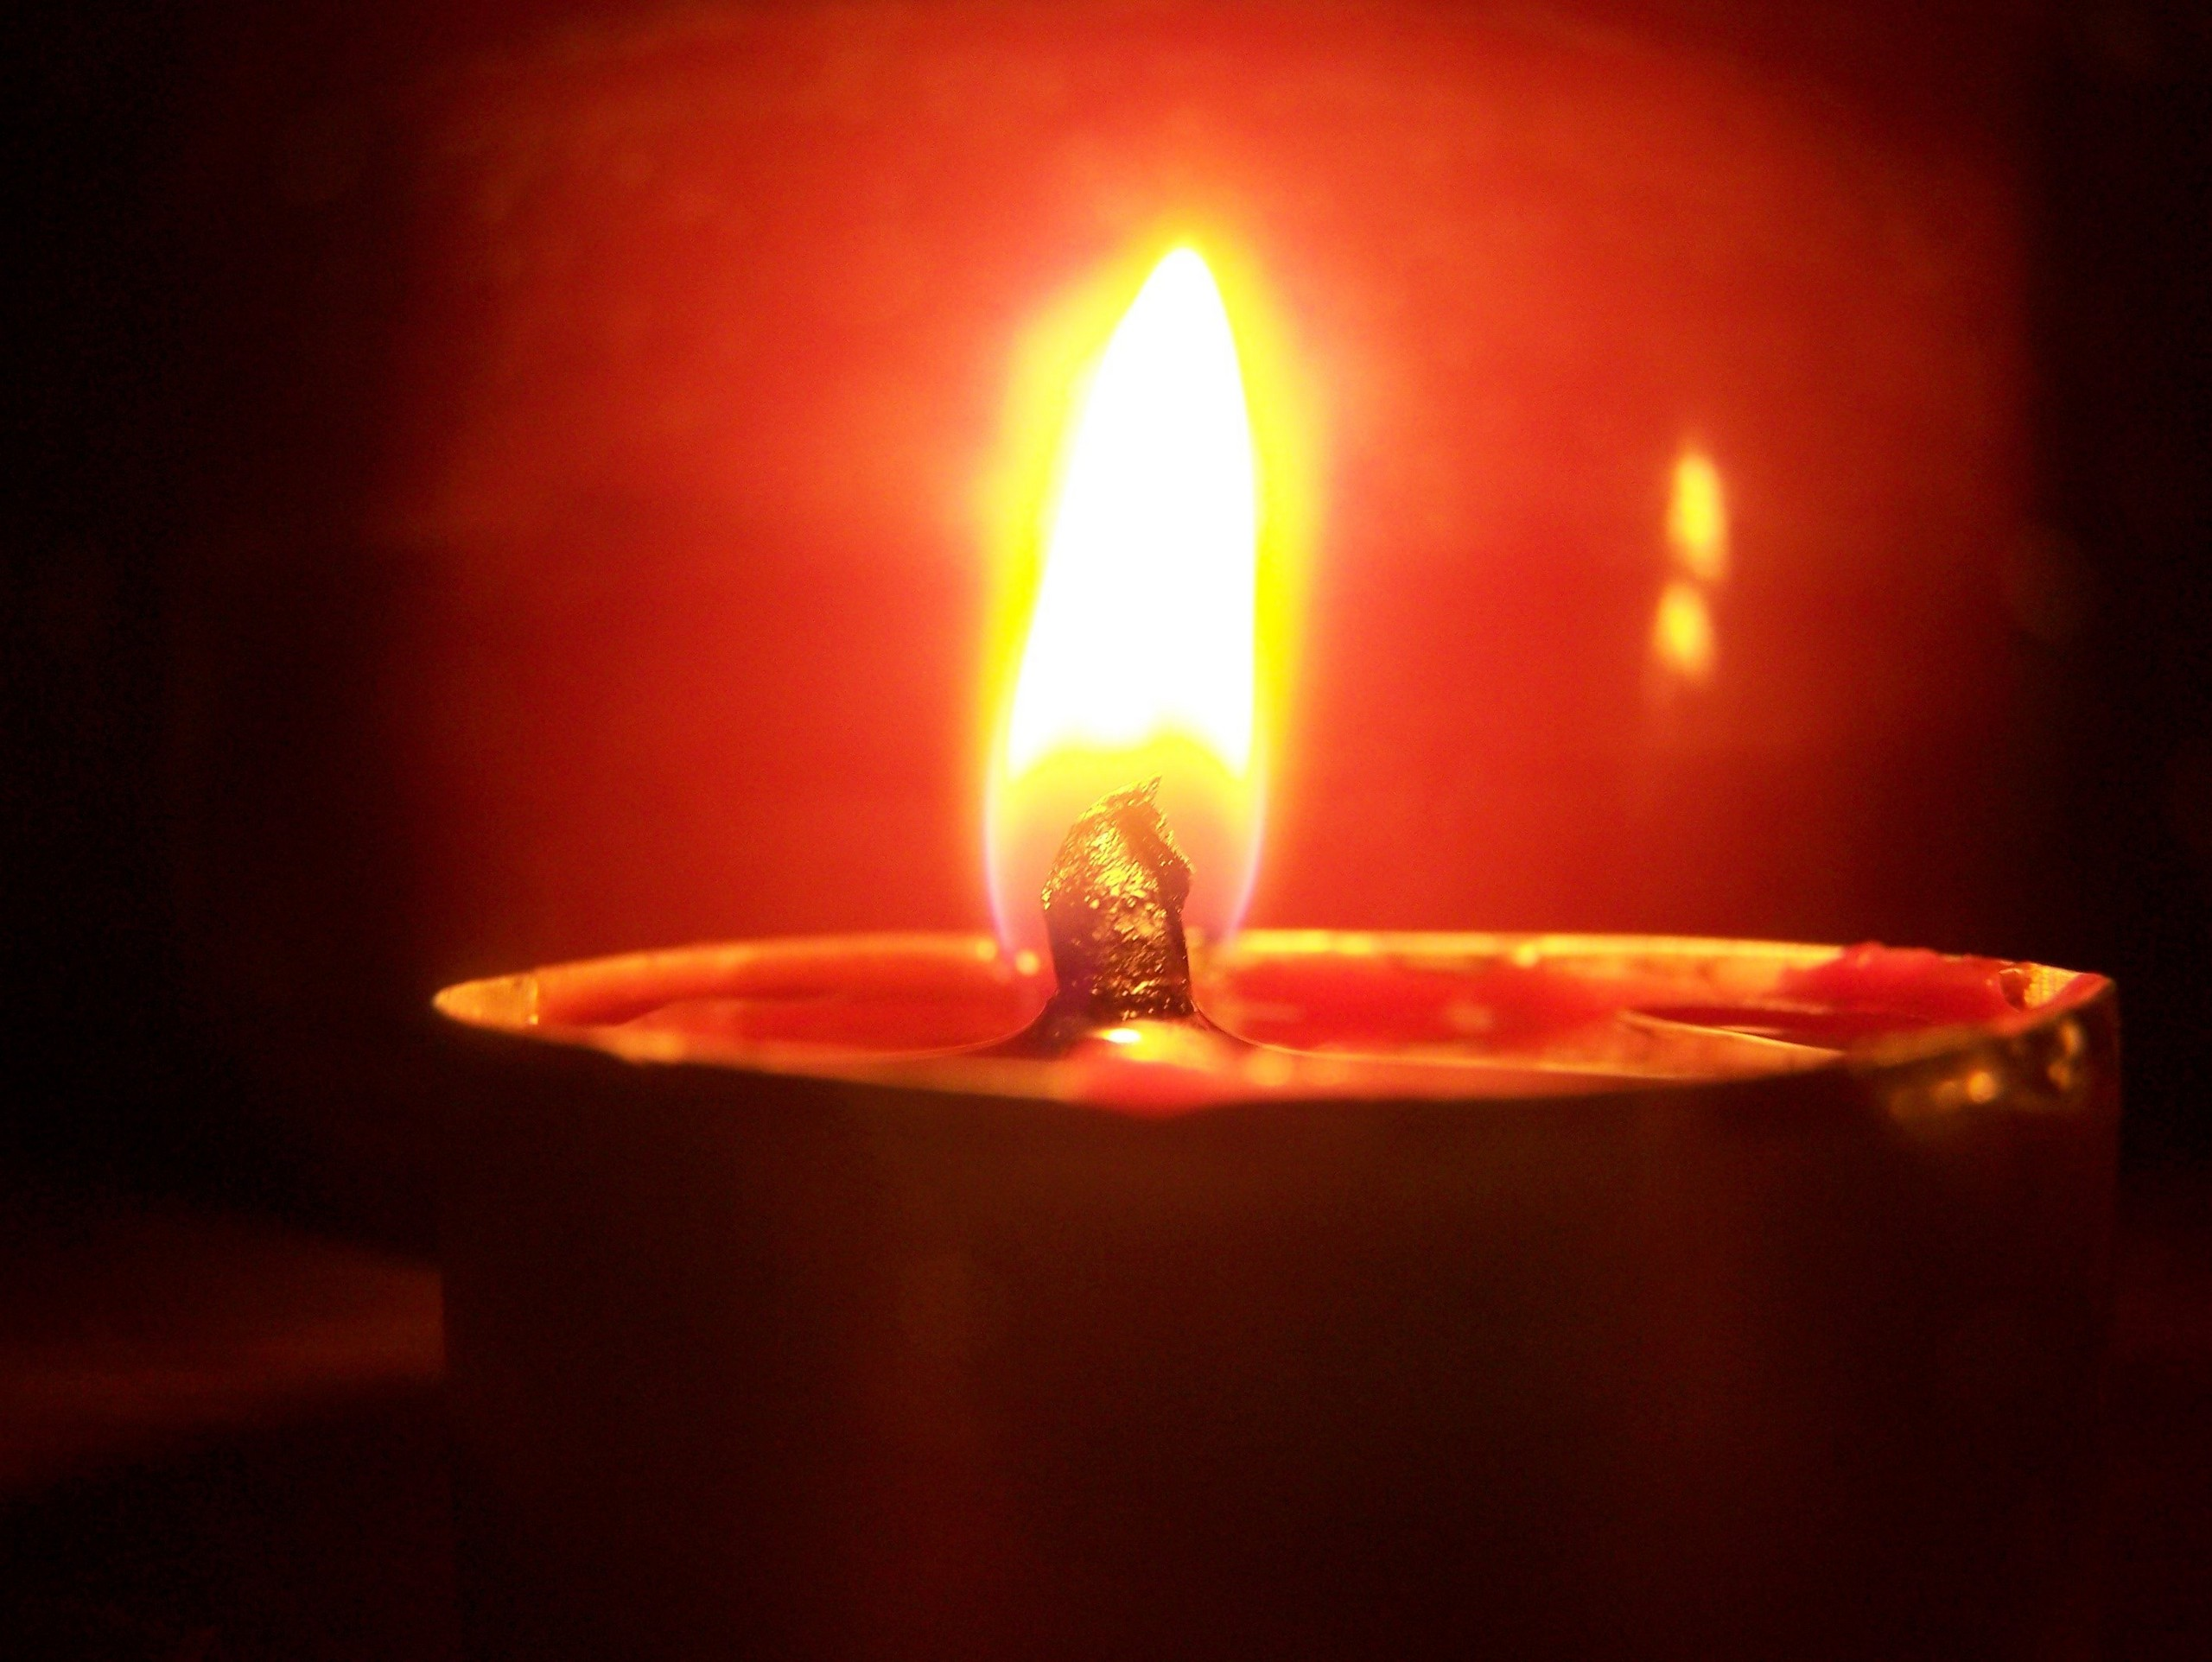 pyromaniac images red candle hd wallpaper and background photos